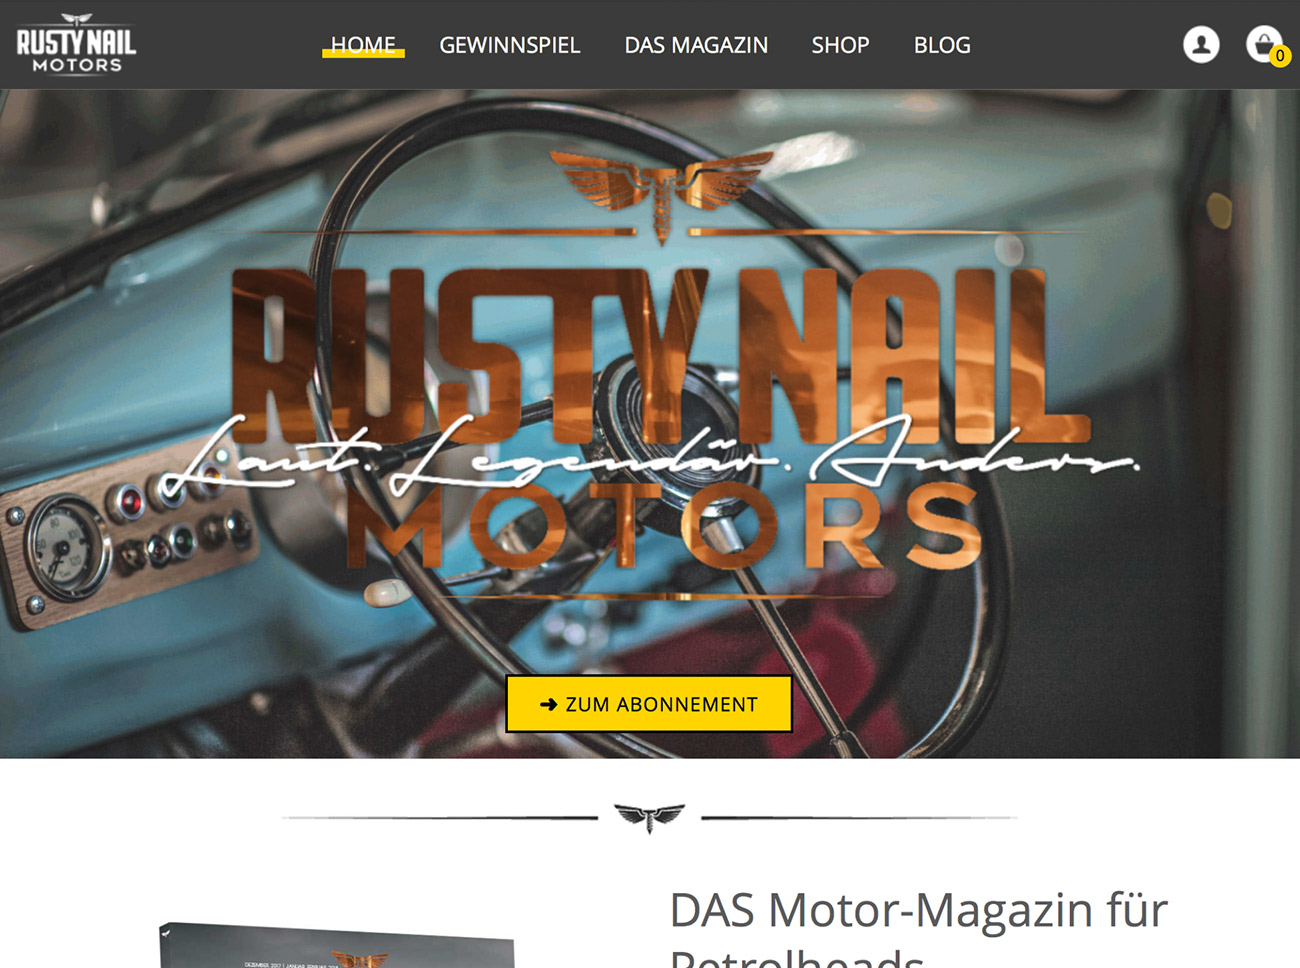 Screenshot Rusty Nail Motors Startseite iPad